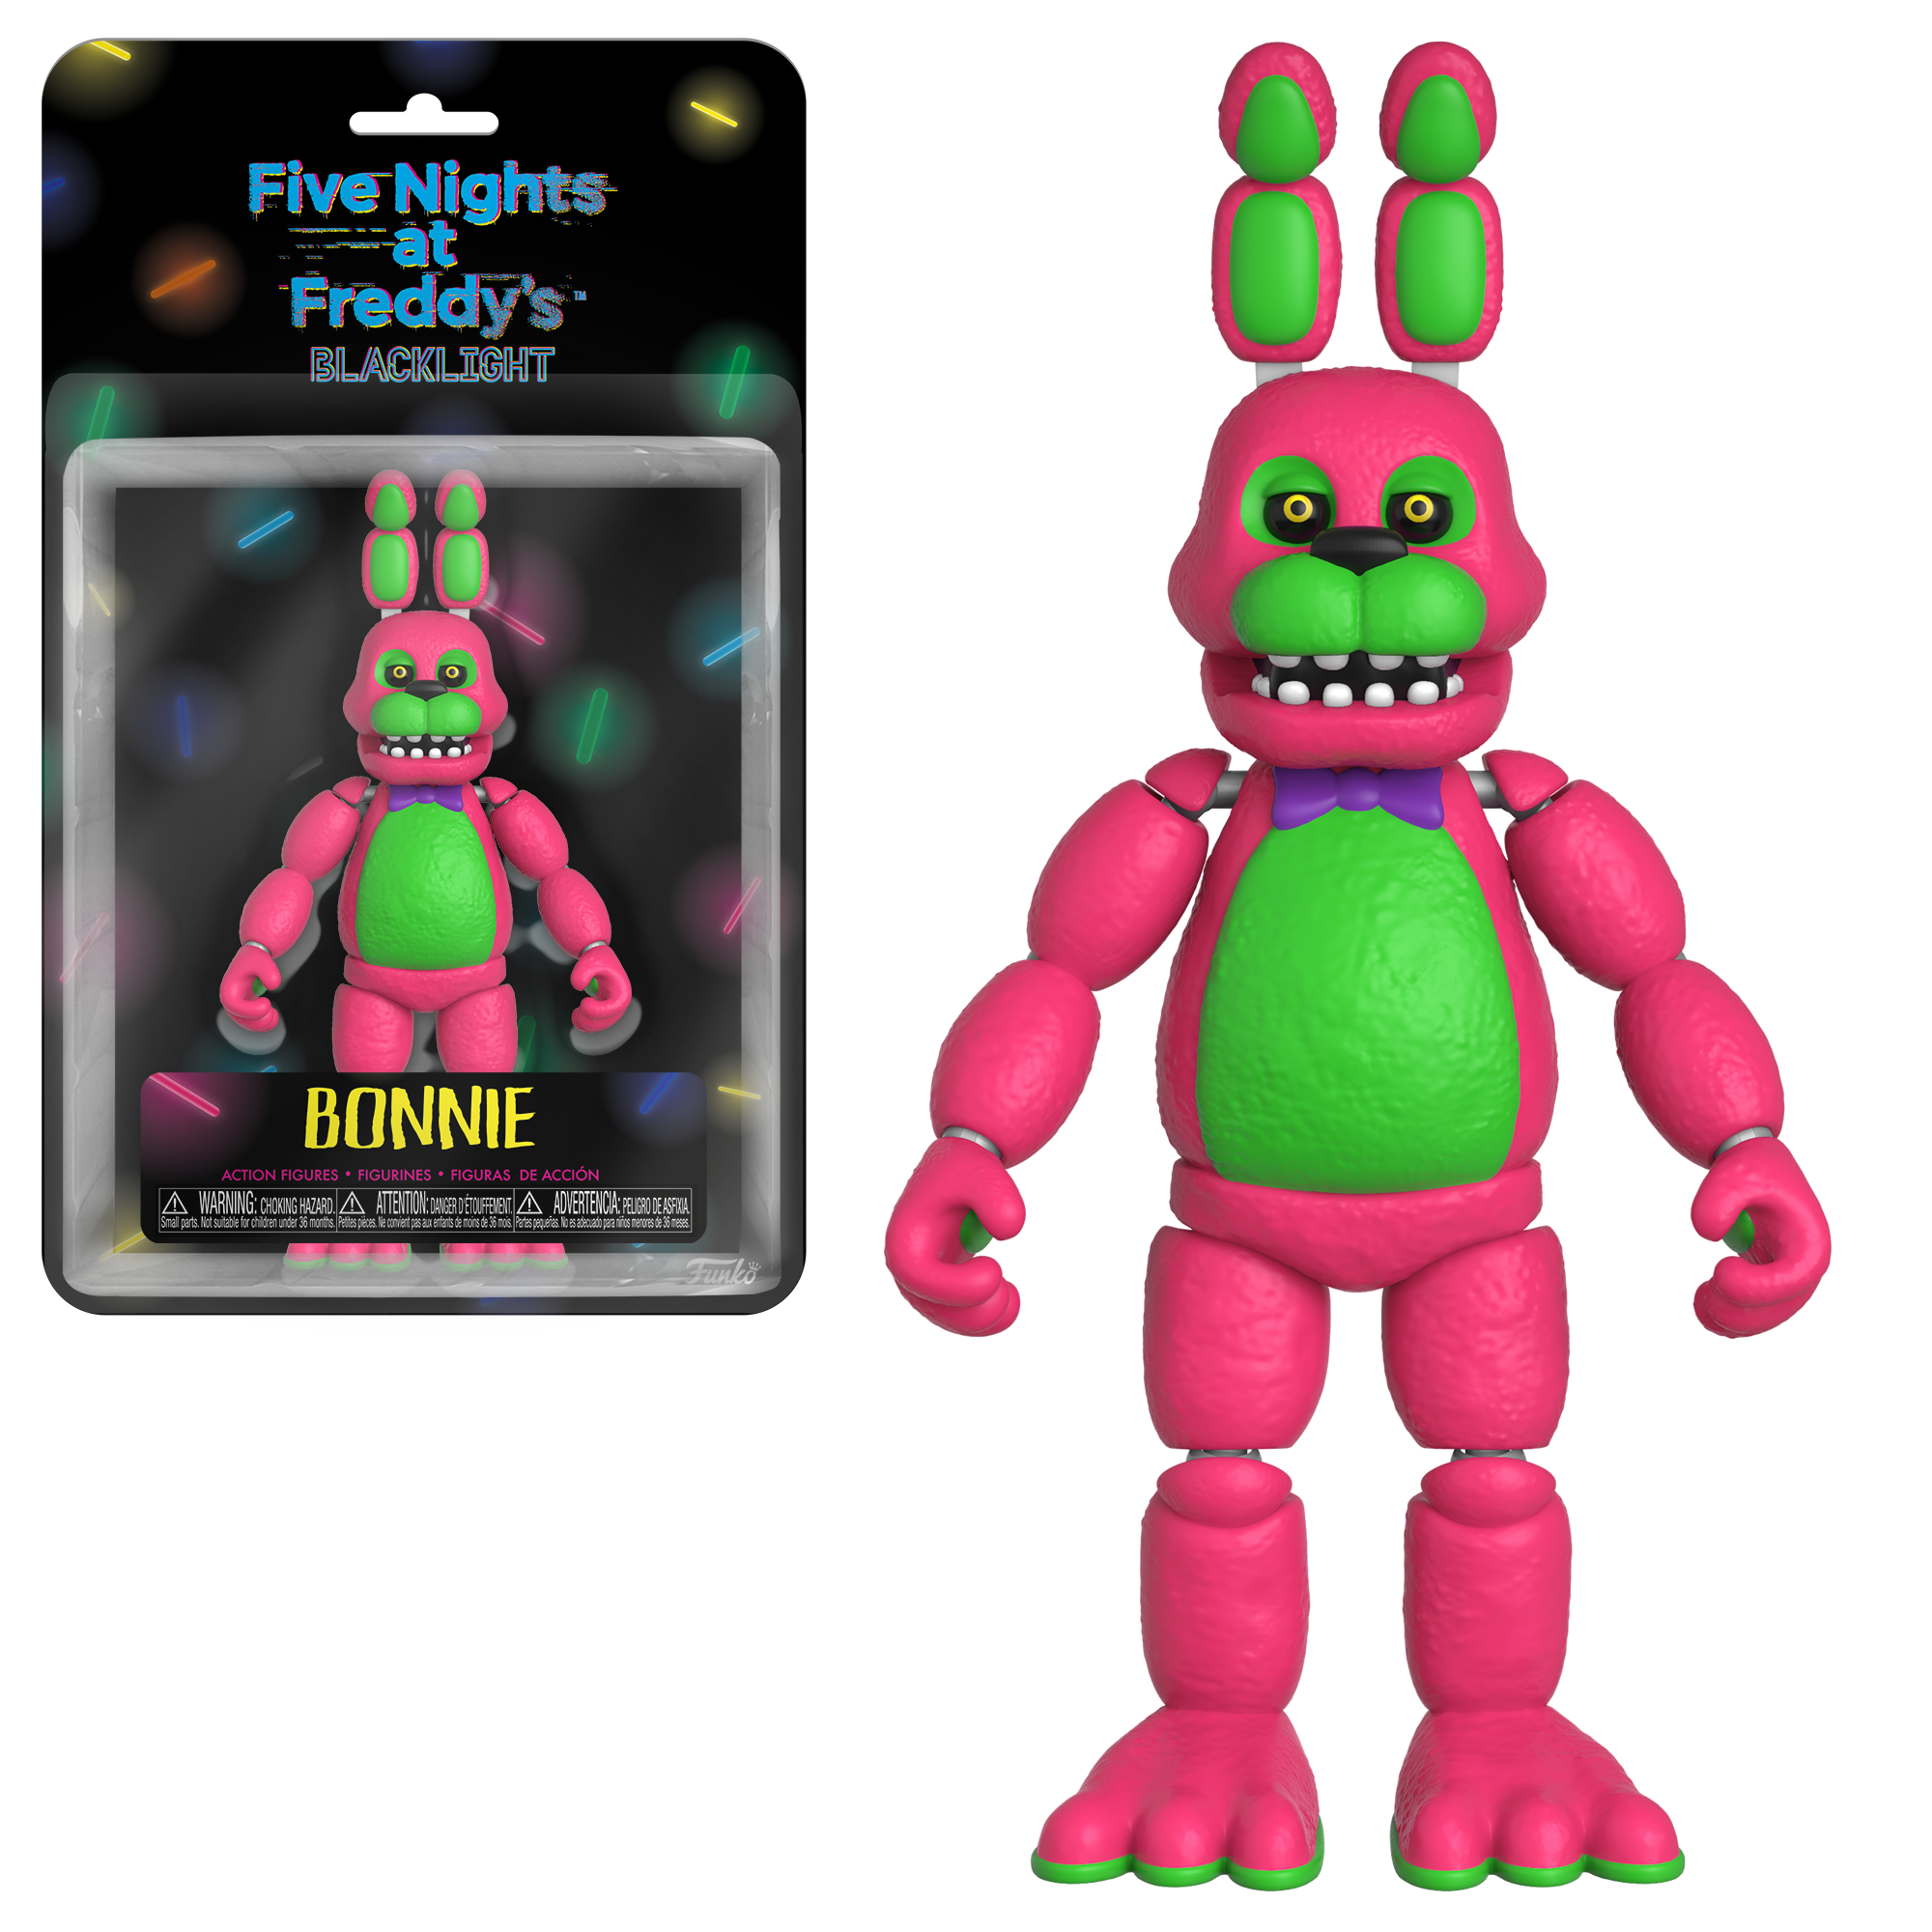 Five Nights At Freddy's Bonnie Animated five nights at freddys blacklight bonnie figure